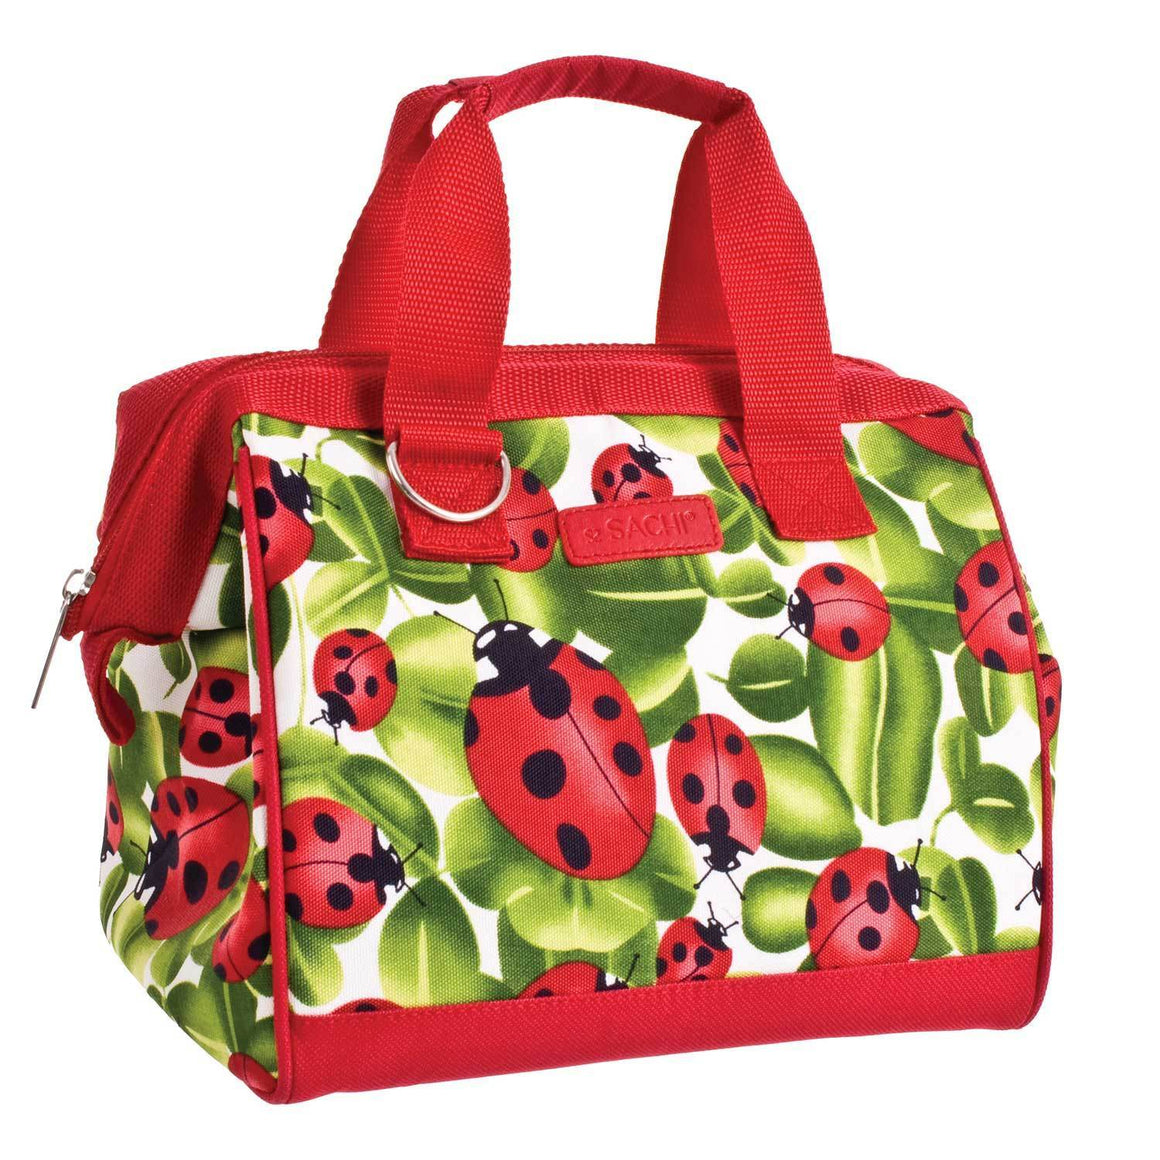 Sachi Insulated Lunch Bag Lady Bug - stuff-n-things